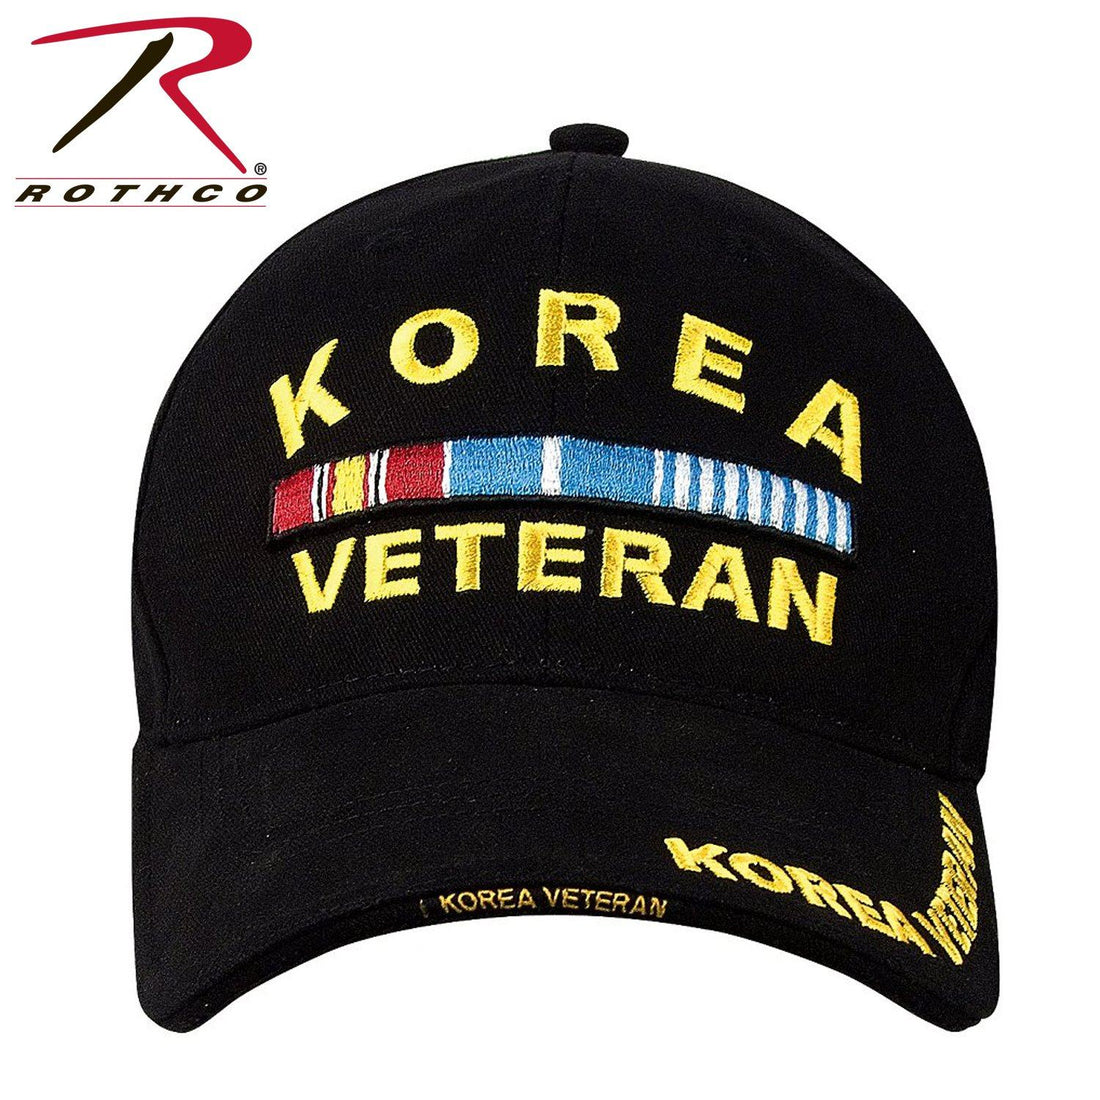 USMC hat by Marine Corps Direct called Rothco Deluxe Korea Veteran Low Profile Insignia Cap